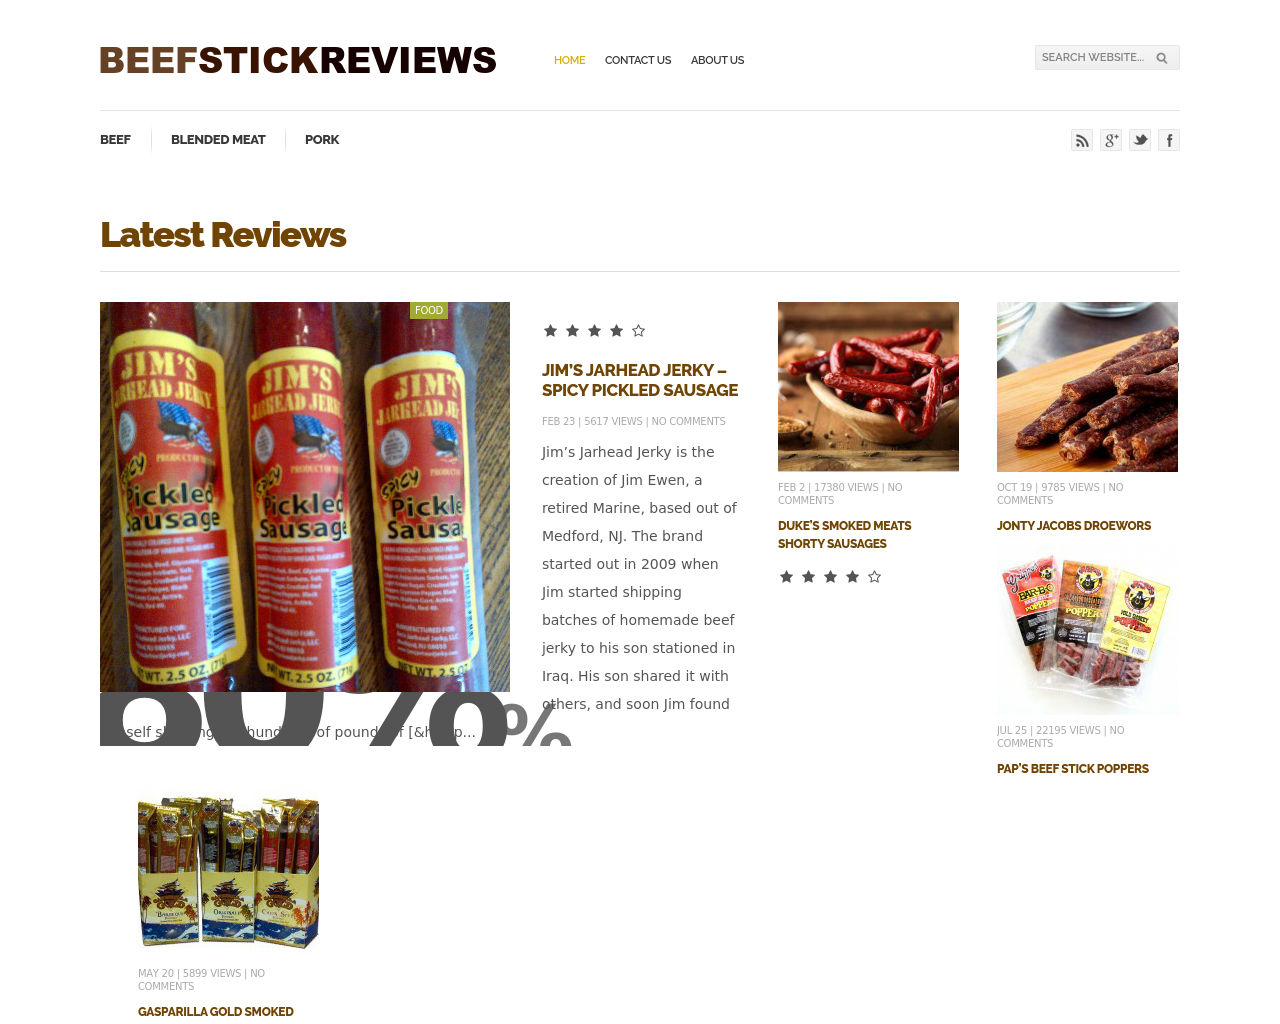 Beef-Stick-Reviews-Advertising-Reviews-Pricing